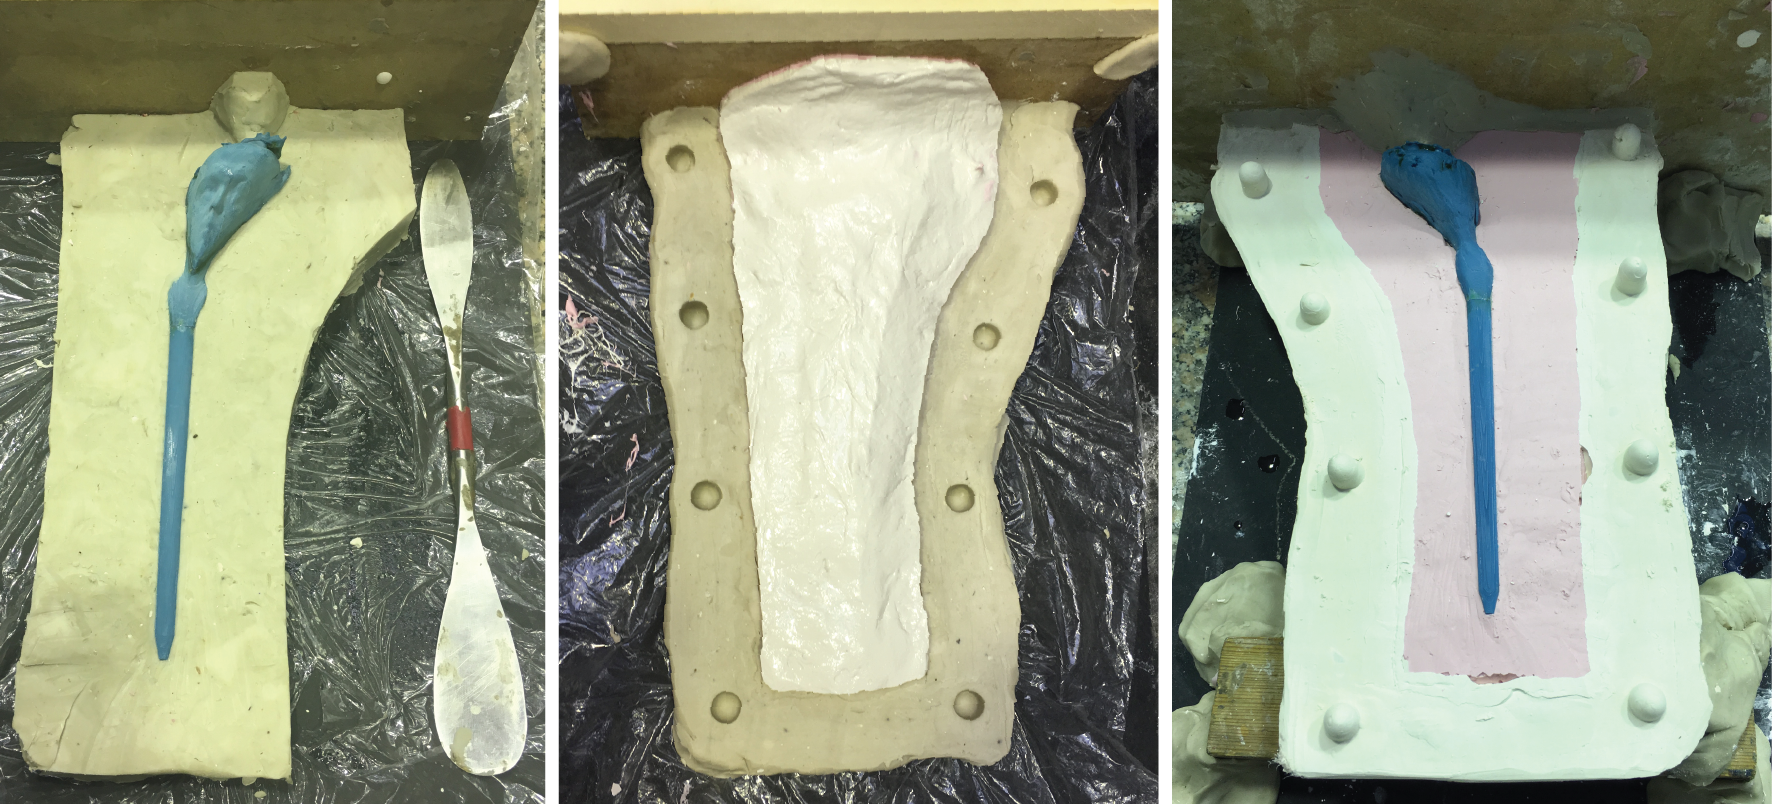 2 sided silicone mold making